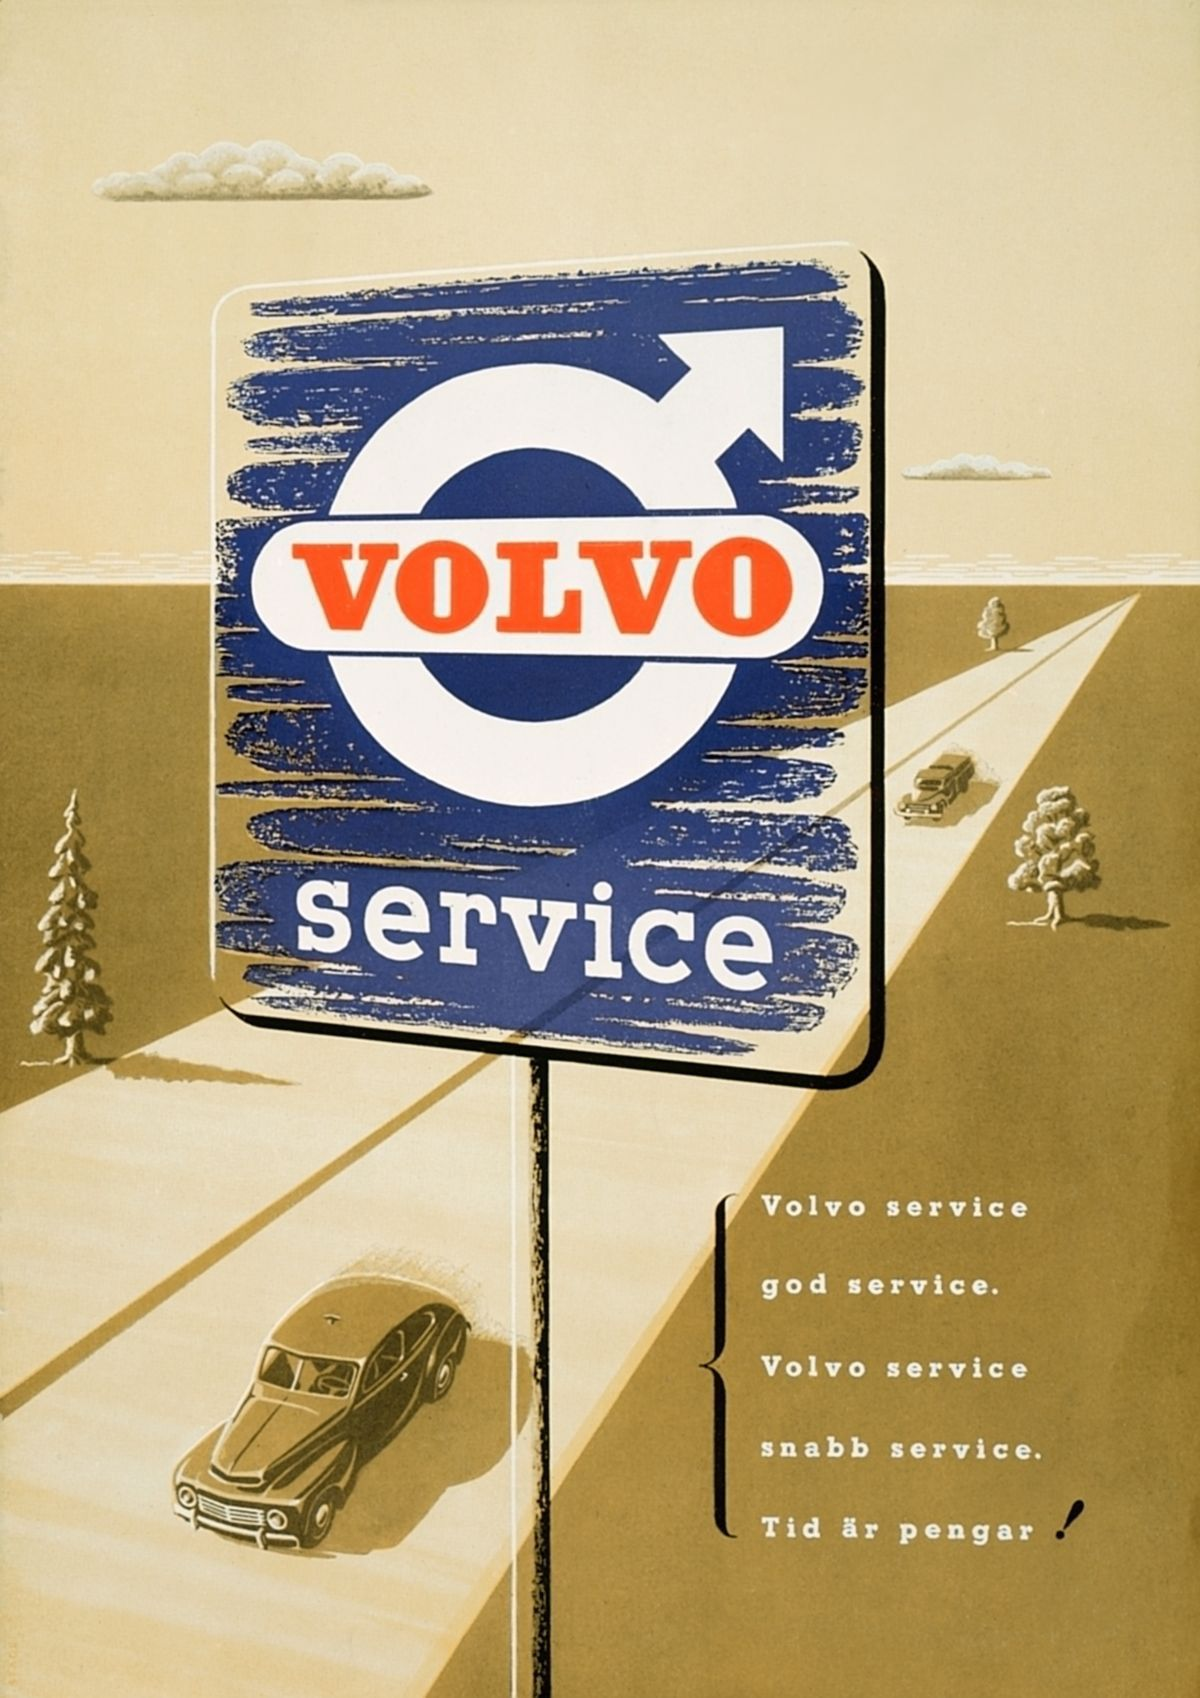 Volvo Service Elst Pin By Deon Prinsloo On Volvo Ads Pinterest Volvo Volvo Cars